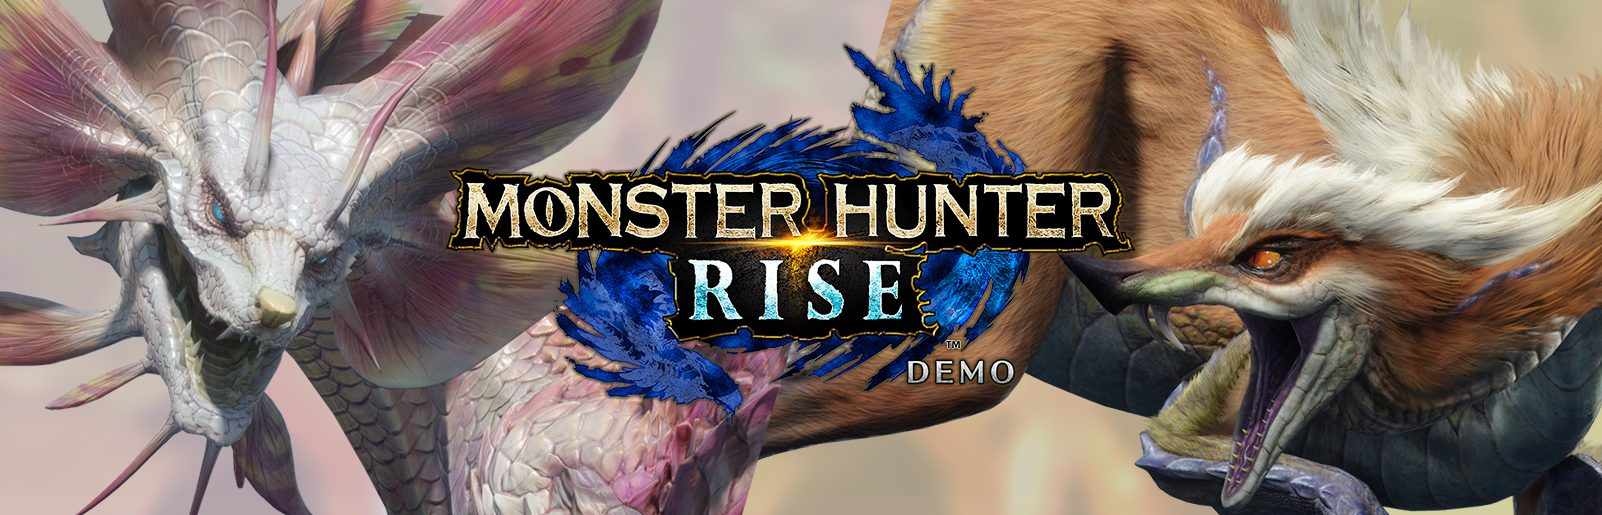 New Gameplay Details & Features Revealed For Monster Hunter Rise; Free Limited Time Demo Releases Tonight